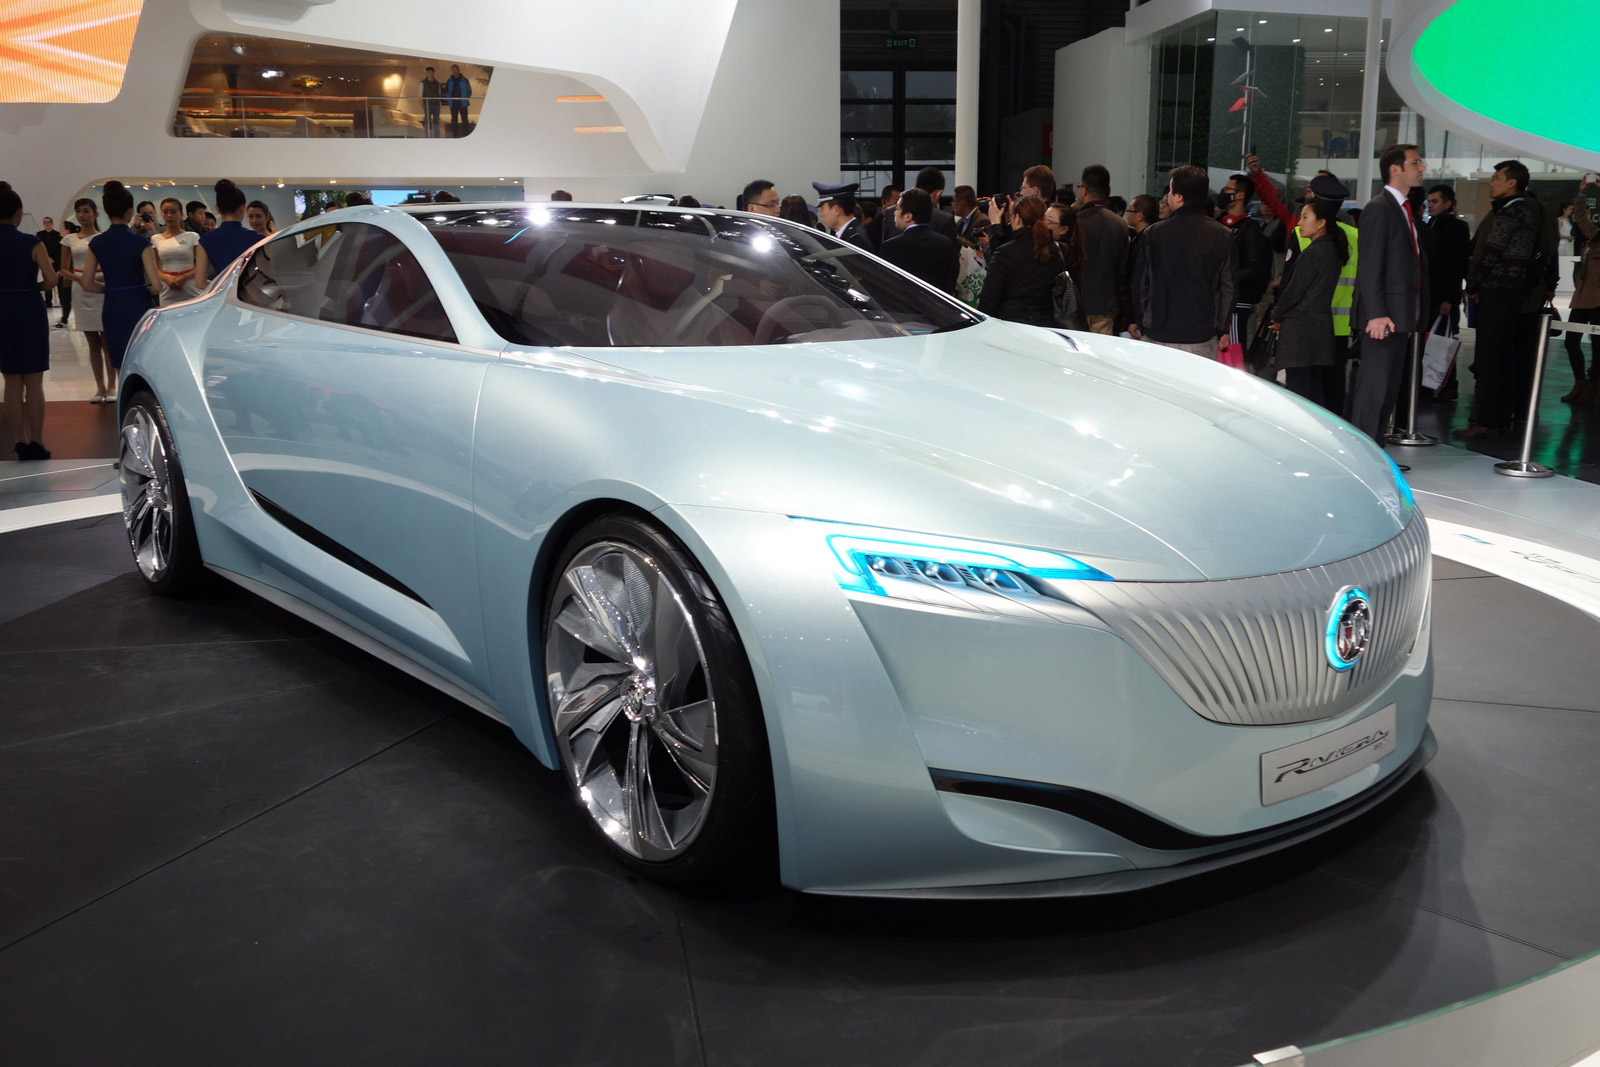 Buick Riviera Concept Isn't Your Father's: Shanghai Auto Show New 2022 Buick Riviera Review, Concept, Images